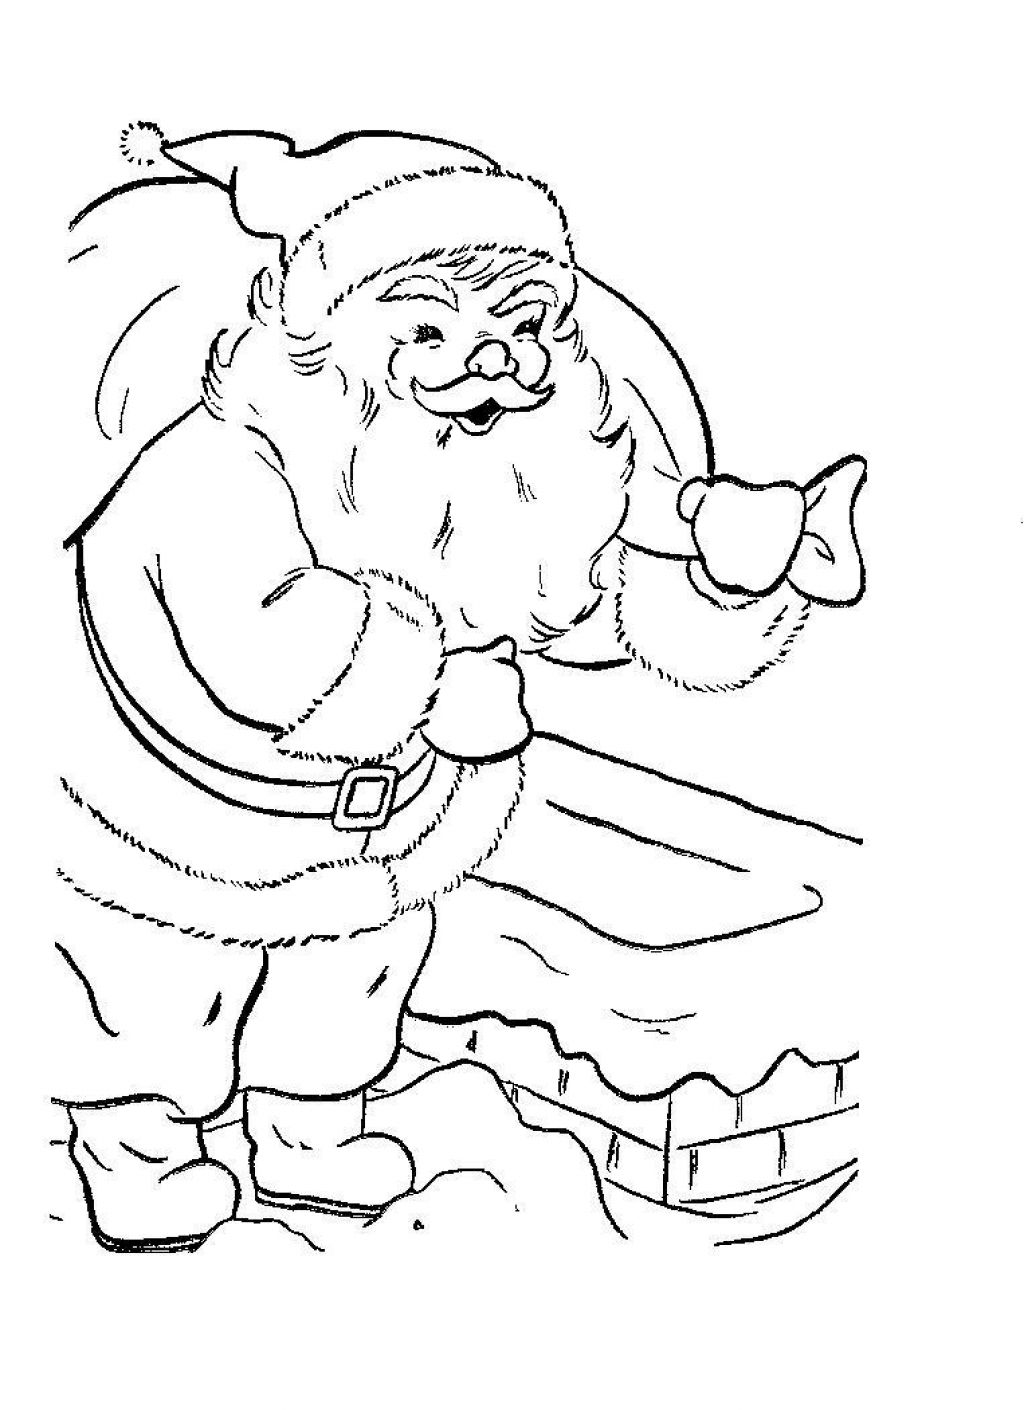 Santa claus face coloring pages for kids - crazywidow.info